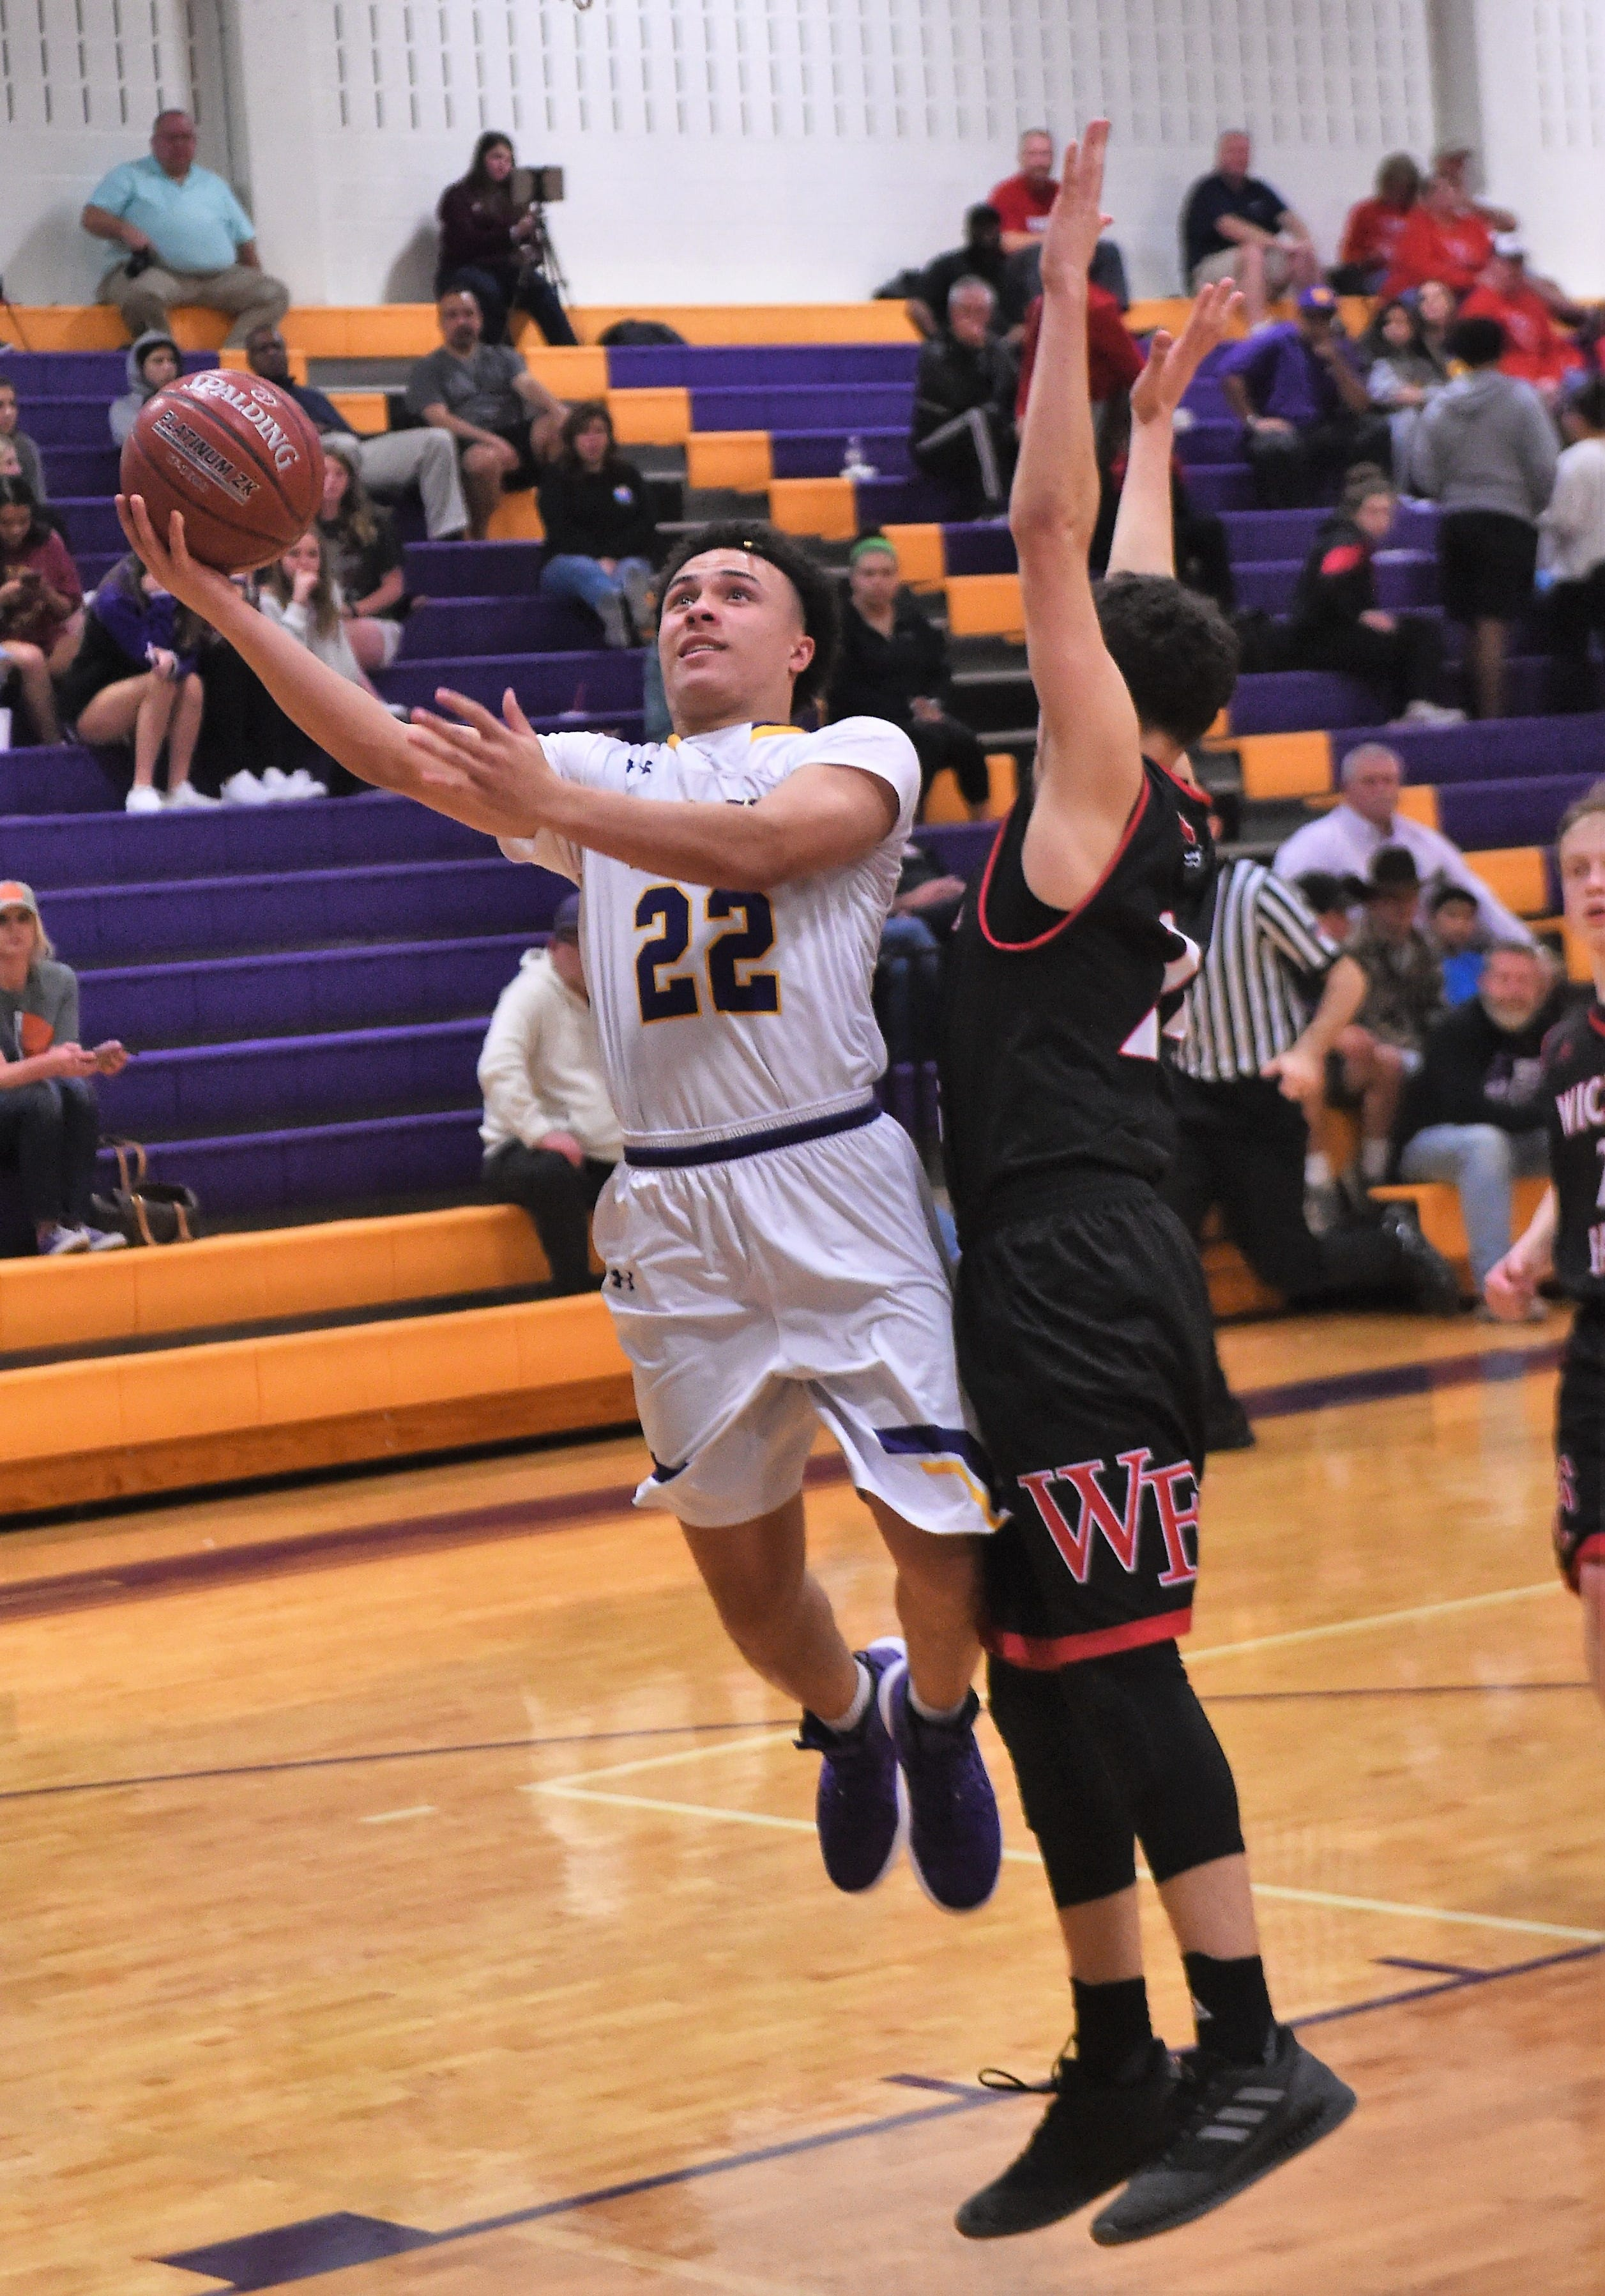 Wylie's Shayden Payne (22) is one of several players getting their first real playoff experience on Tuesday as the Bulldogs face Lubbock Monterey at 7 p.m. at Borden County High in a Region I-5A bi-district playoff.